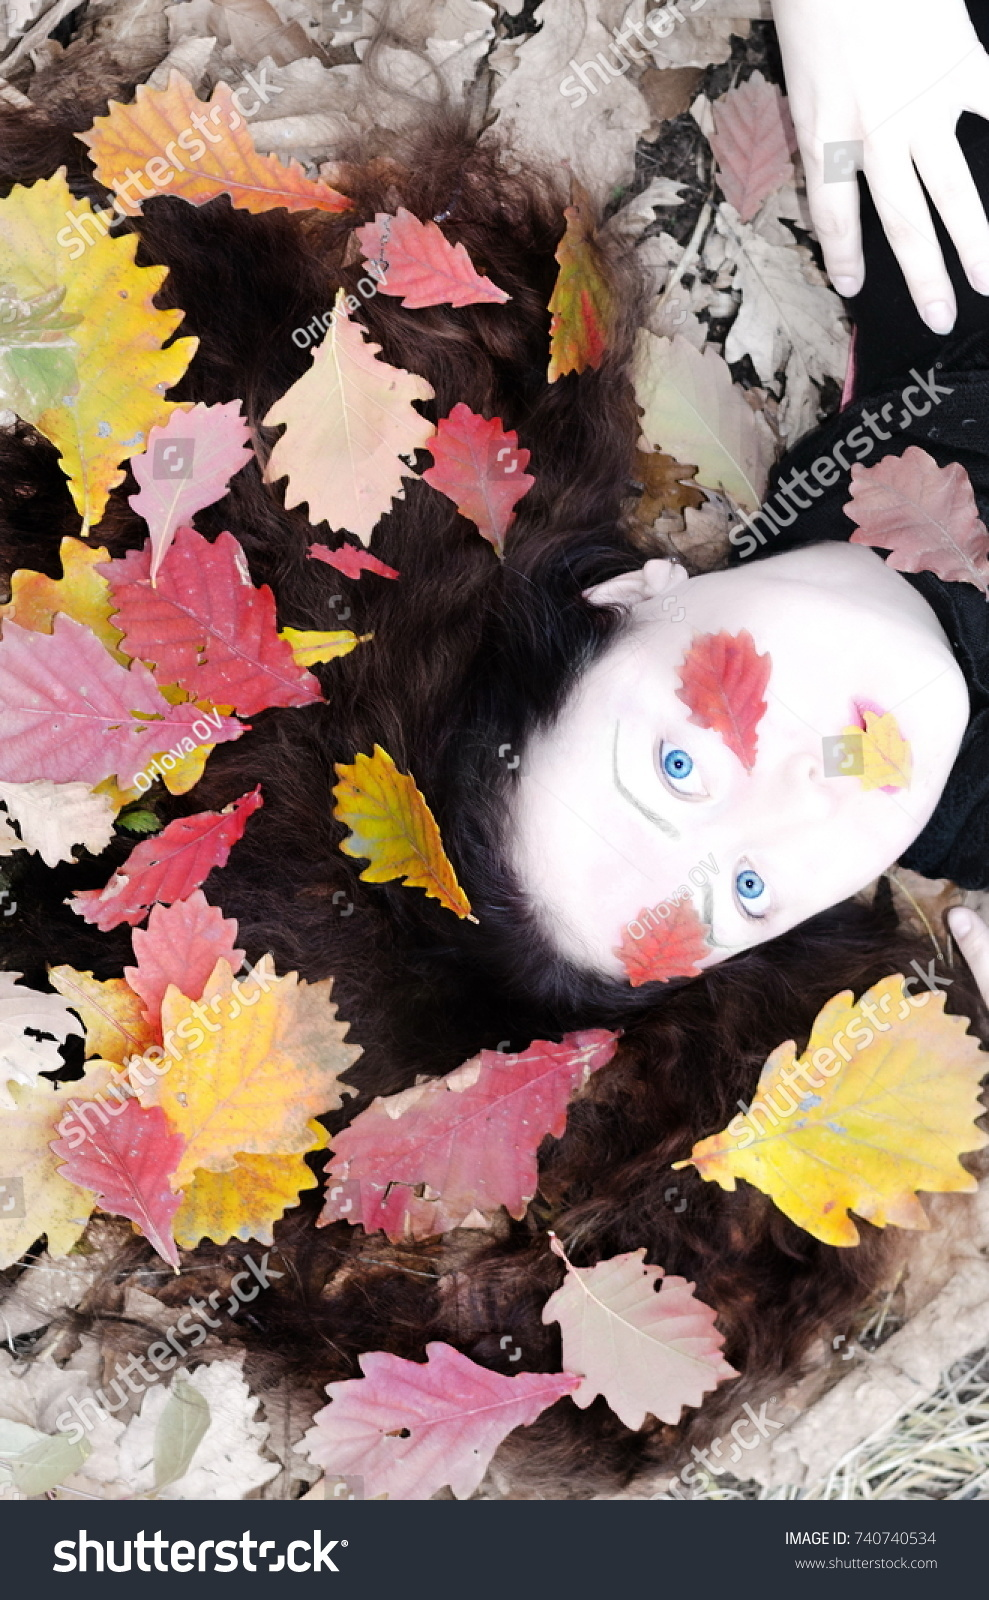 stock-photo-a-girl-with-loose-hair-she-lies-on-top-of-her-there-are-autumn-leaves-a-white-face-similar-to-a-740740534.jpg